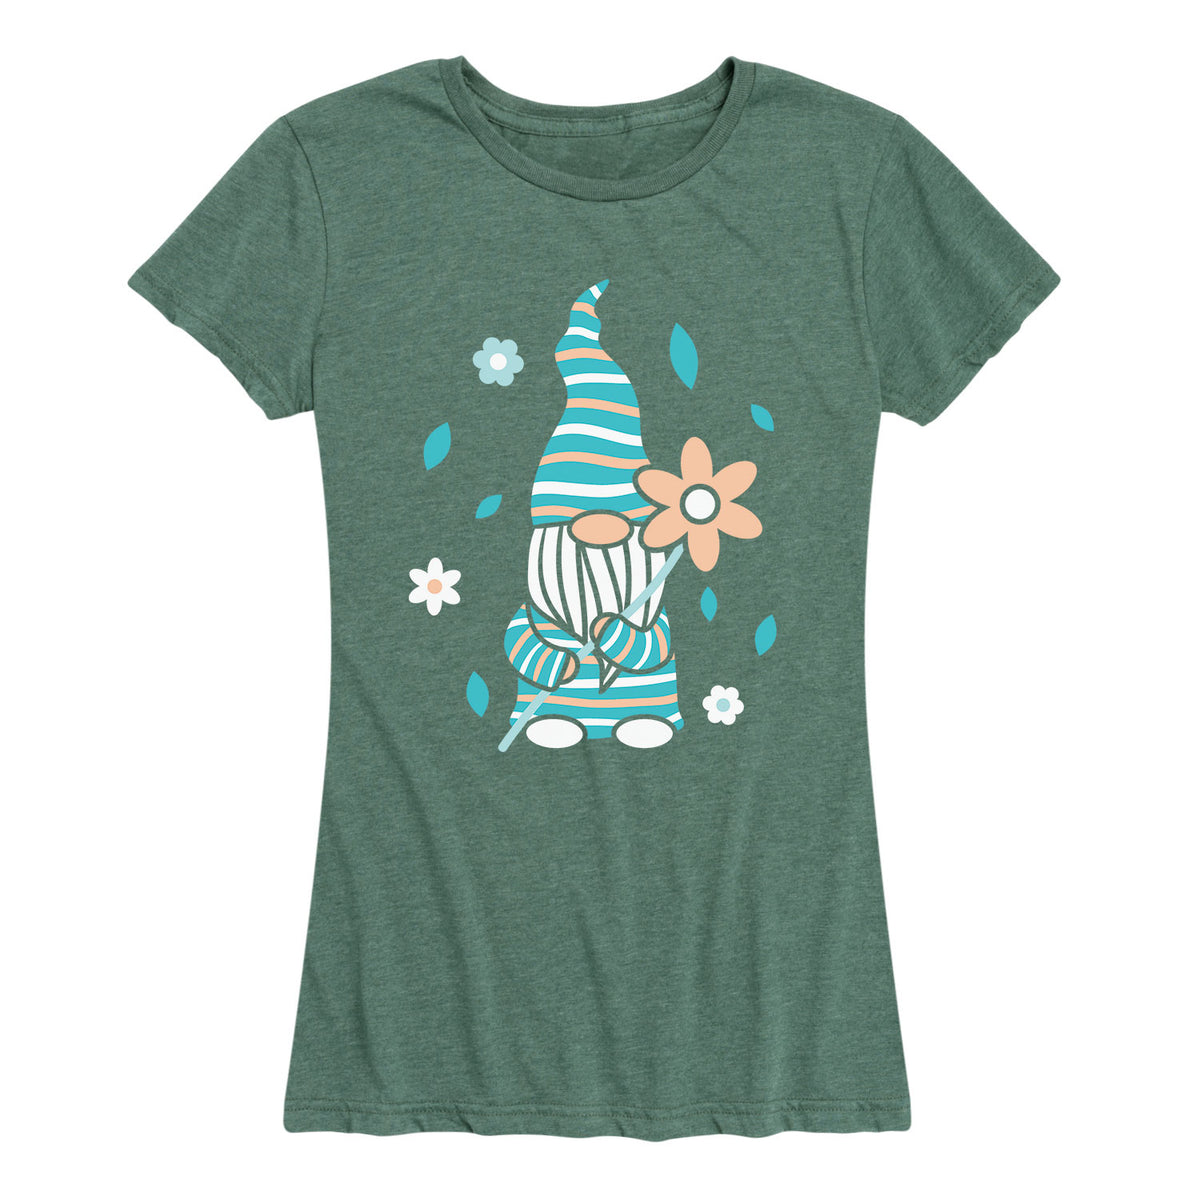 Scandinavian Garden Gnome - Women's Short Sleeve T-Shirt